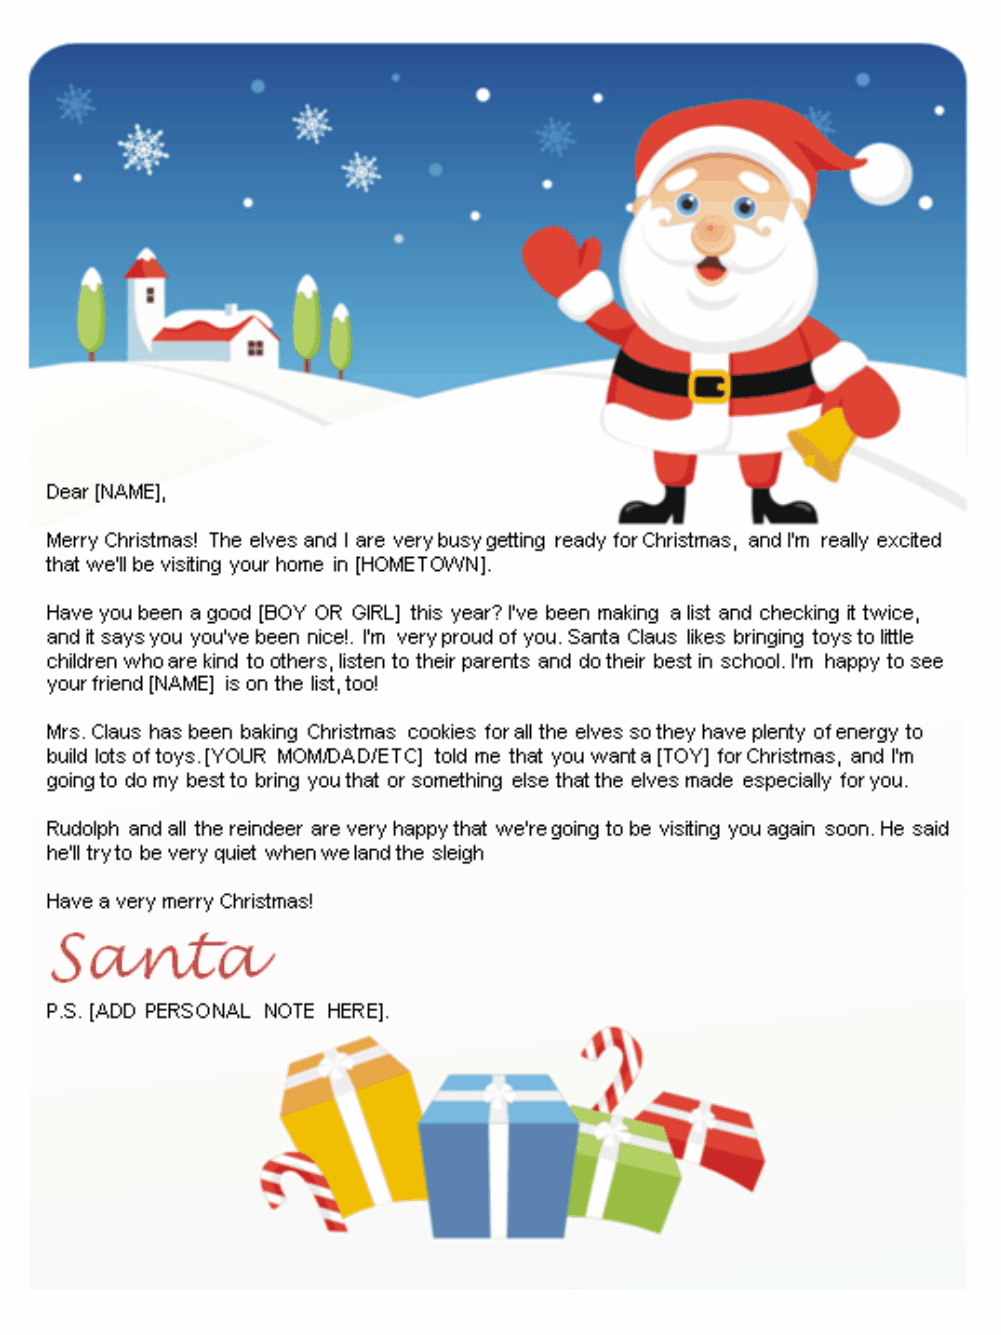 Free Letters From Santa | Santa Letters To Print At Home - Gifts - Free Printable Letters From Santa